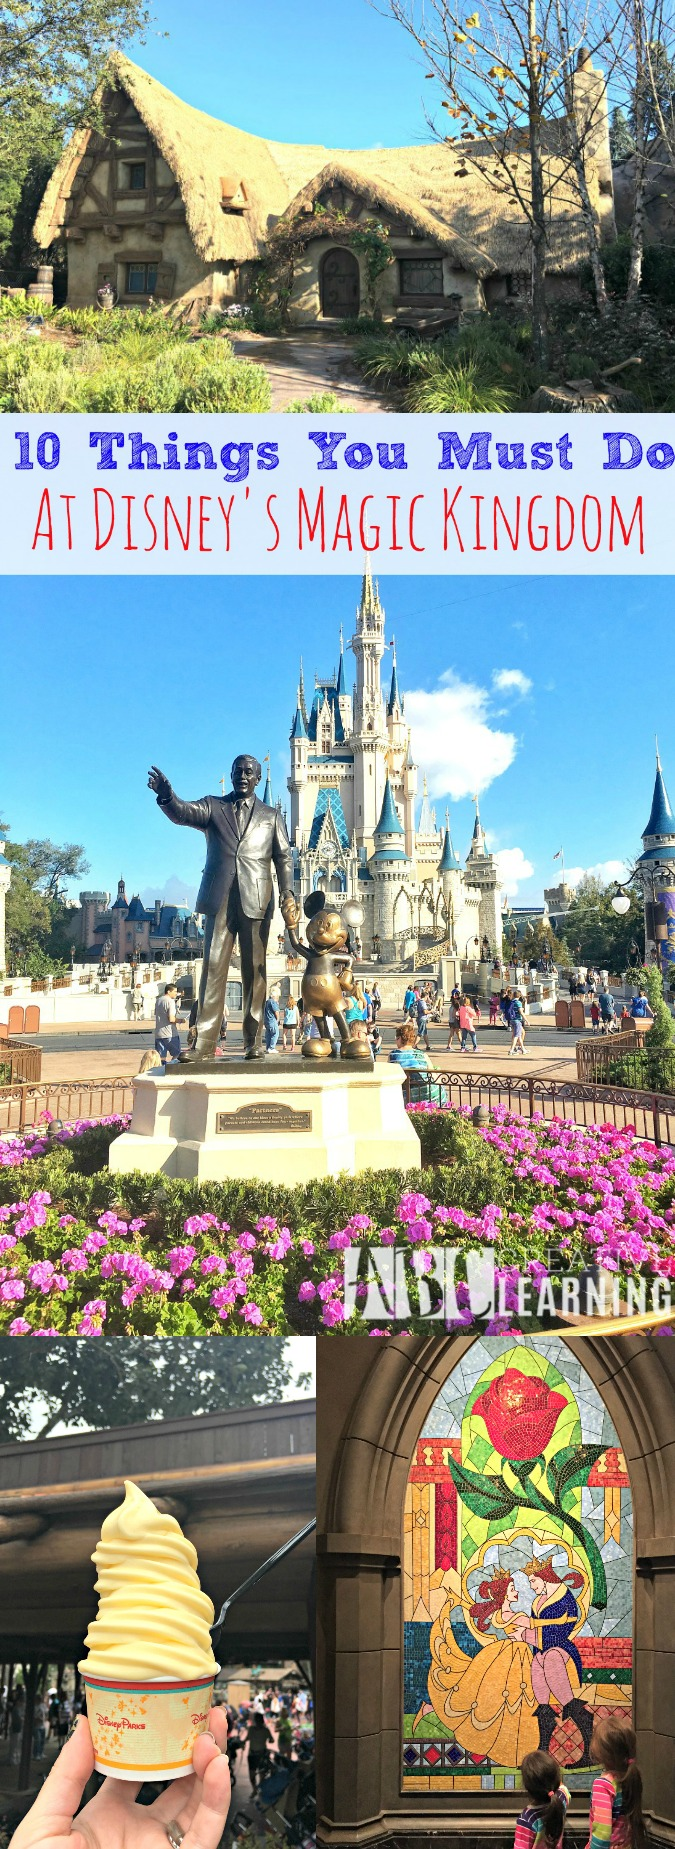 10 Things You Must Do At Disney's Magic Kingdom - abccreativelearning.com